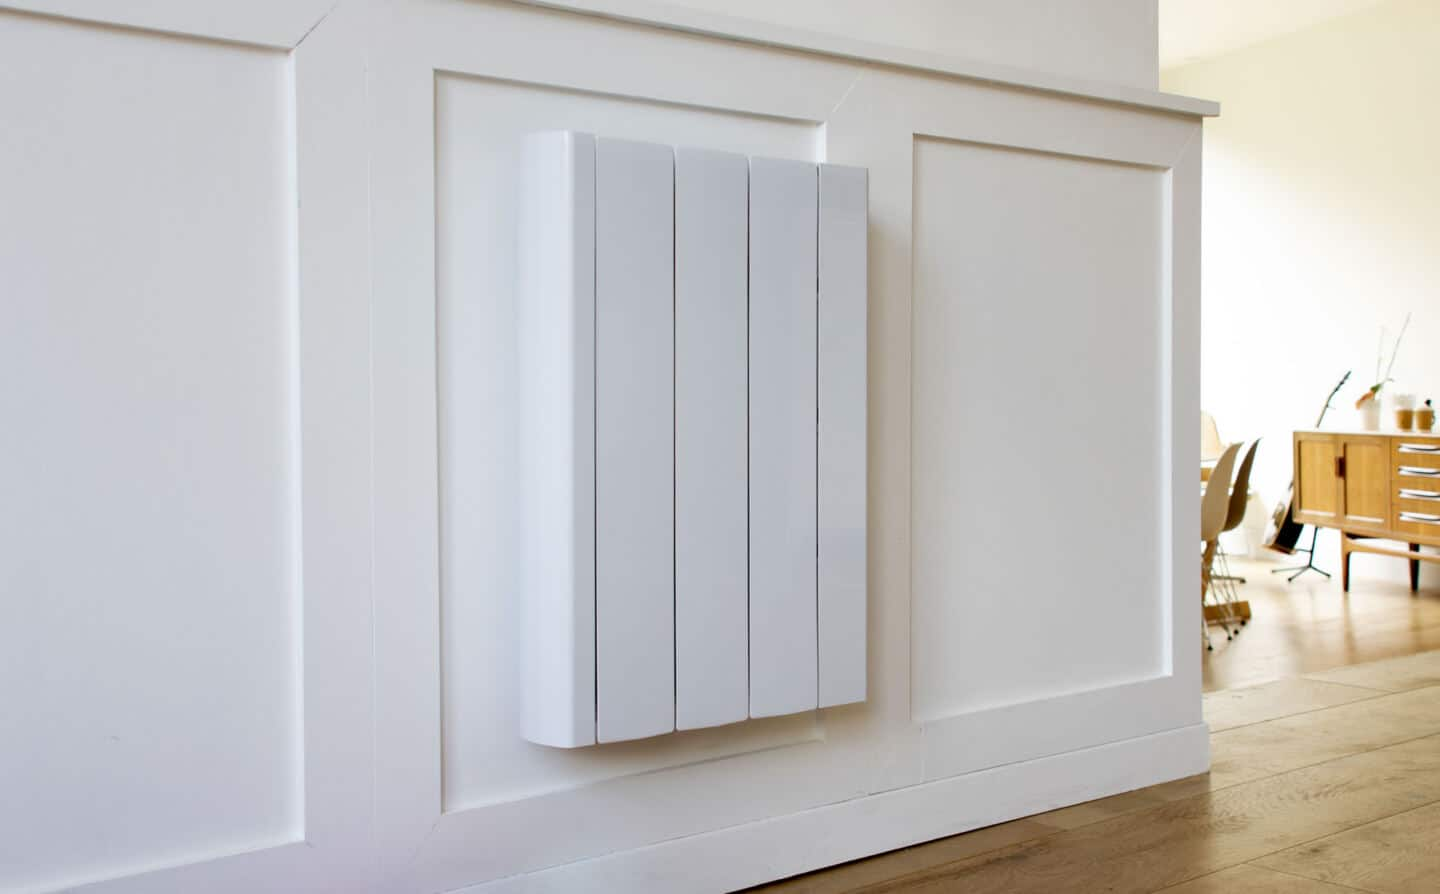 The Ecostrad iQ Ceramic radiator mounted on a white wall